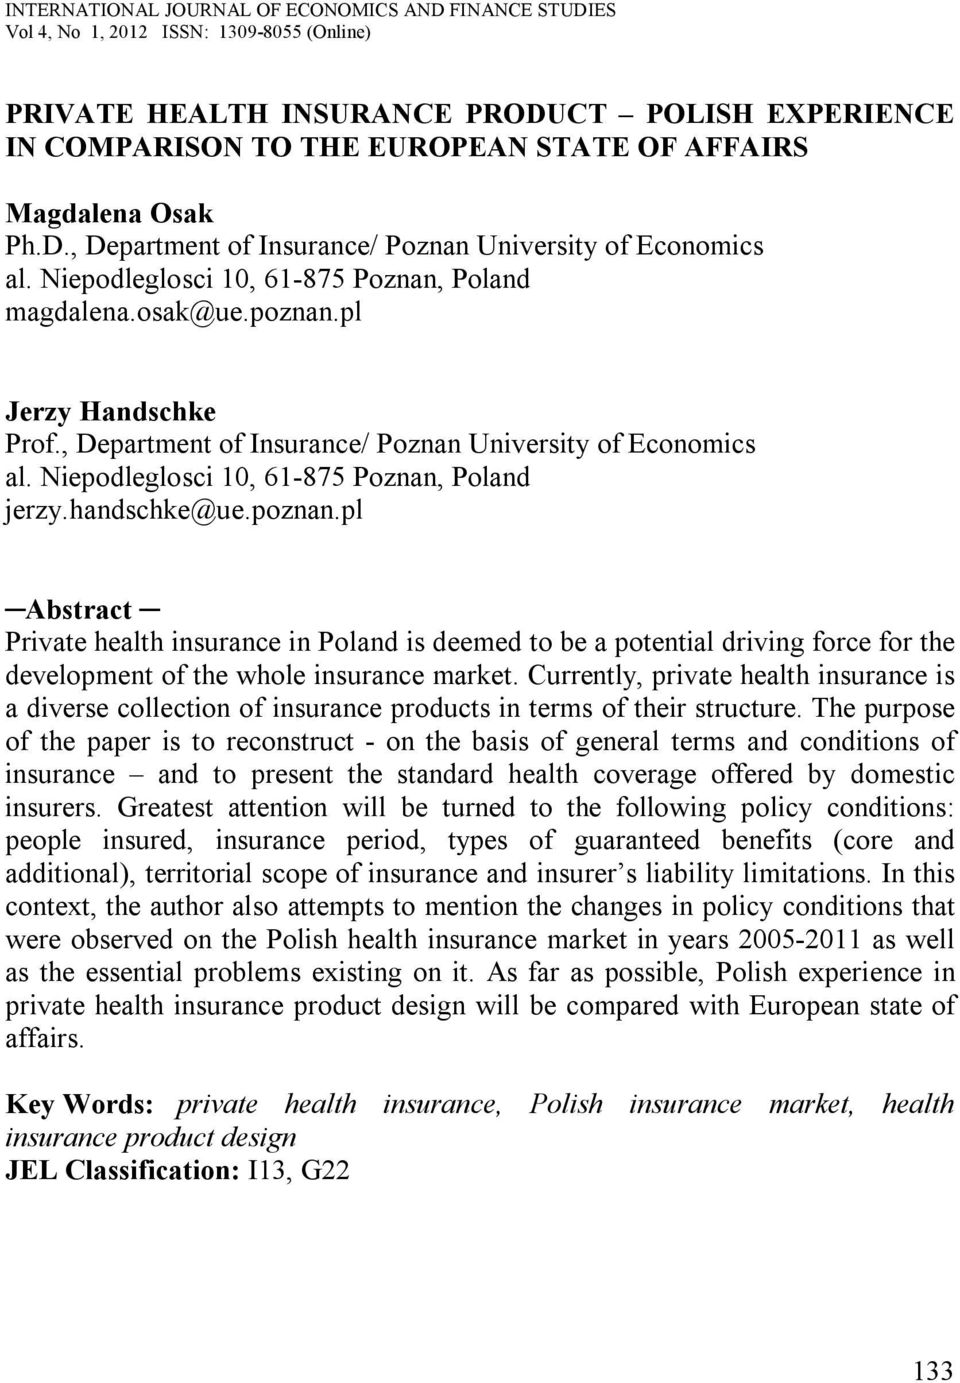 handschke@ue.poznan.pl Abstract Private health insurance in Poland is deemed to be a potential driving force for the development of the whole insurance market.